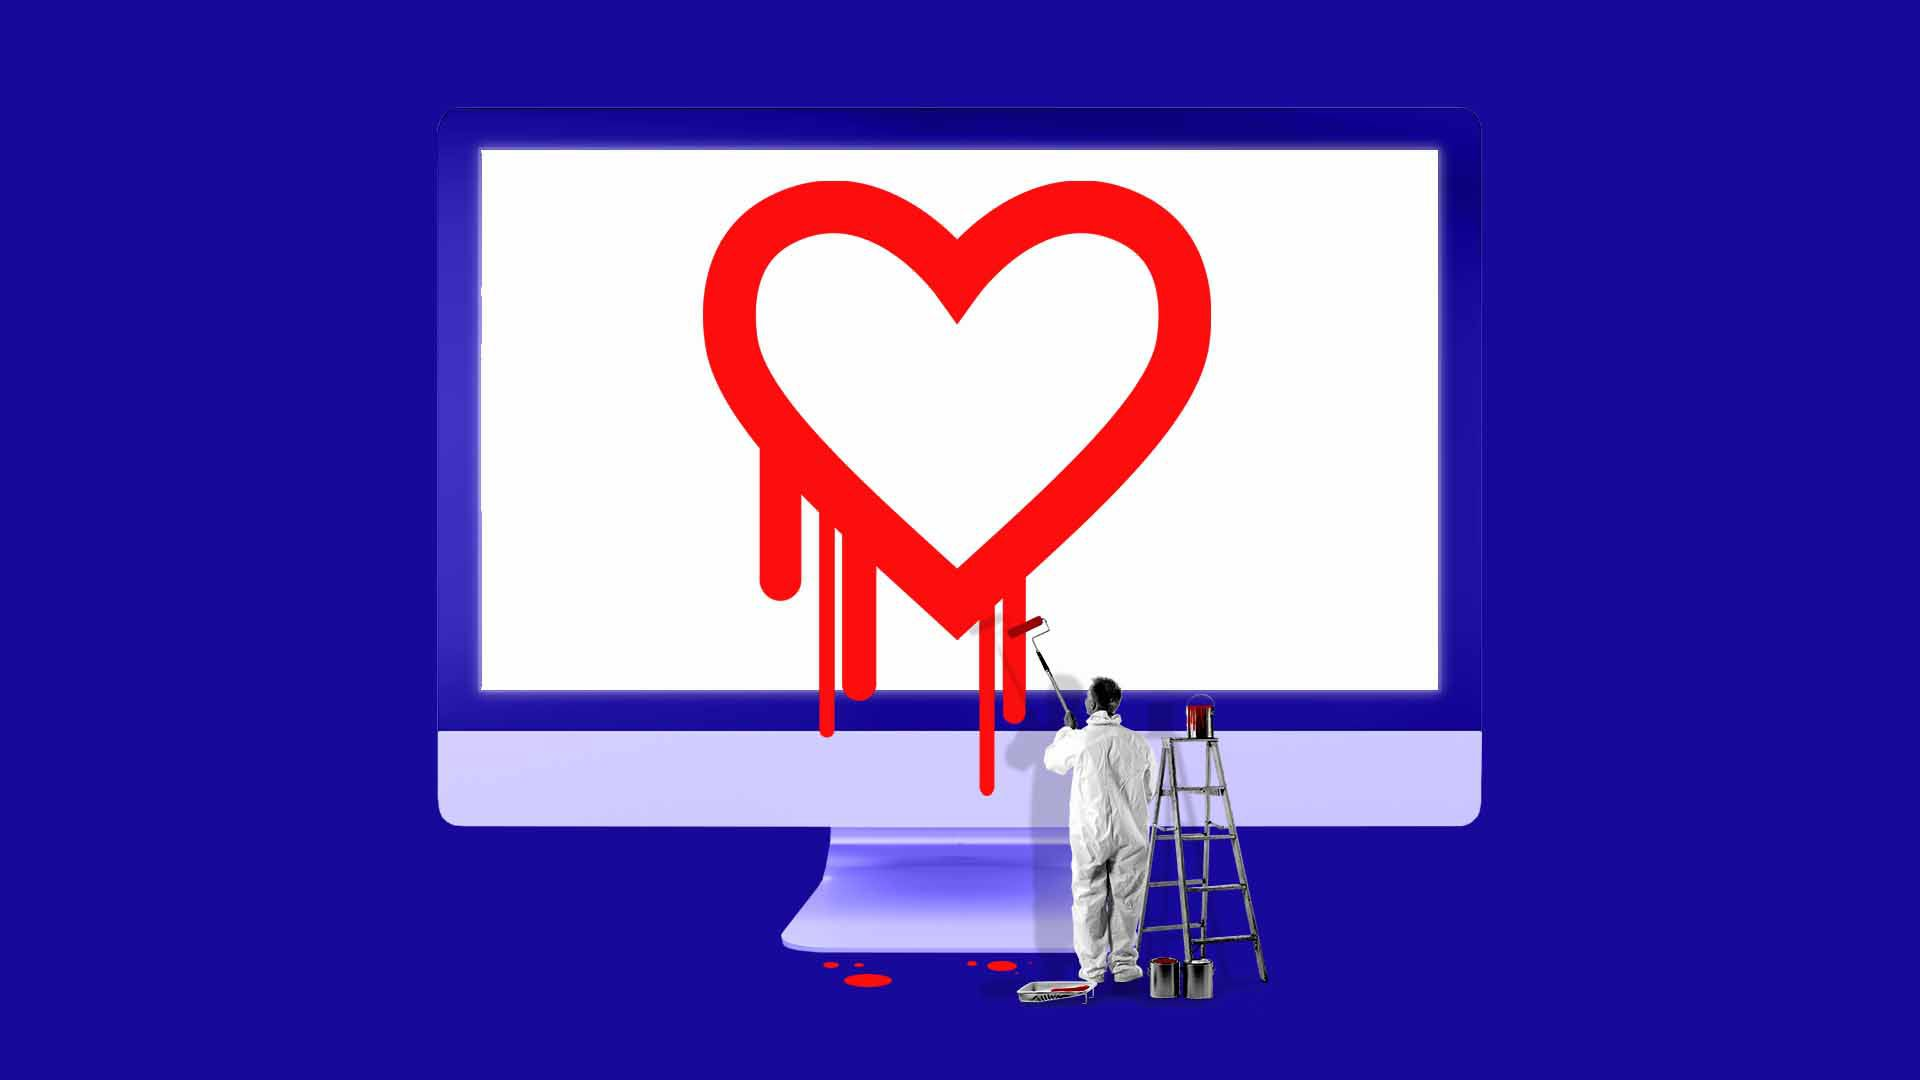 How Heartbleed turned cybersecurity vulnerabilities into brands